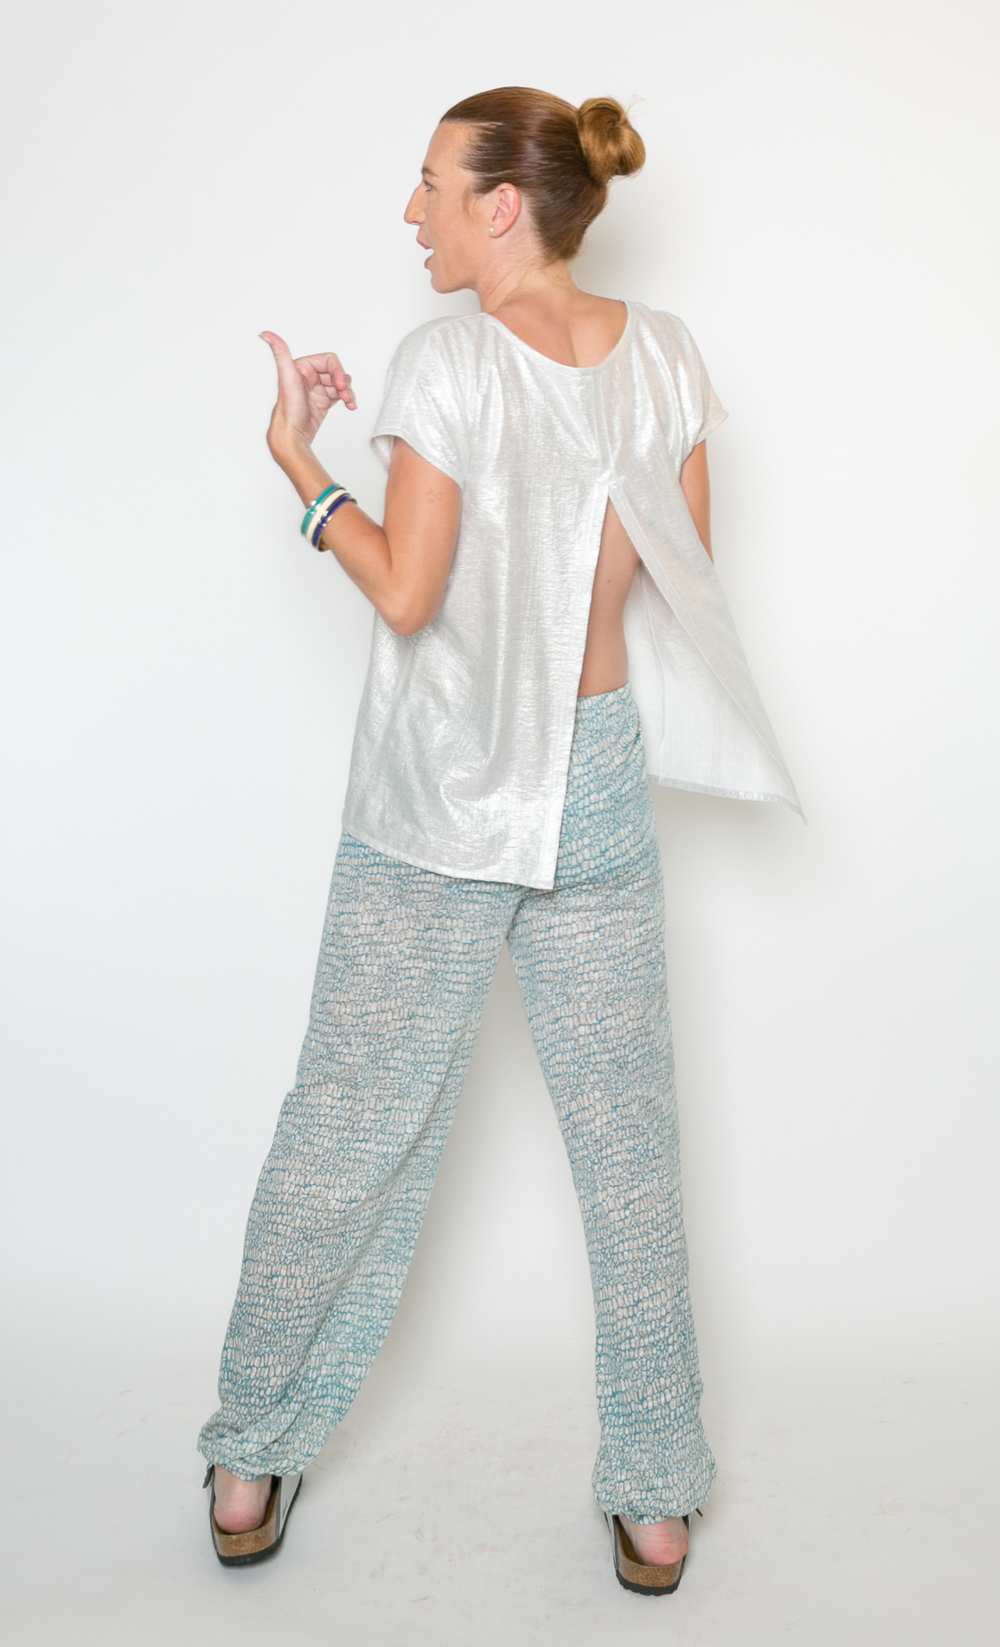 "Sparkle Contemplative Top  #P44P6-26 Sparkle Contemplative Top   $49 #P44P6-32 Sparkle Contemplative Top   $49 Back Button Top, 26"" or 32"" length Silver Sparkle (Rayon/Poly) (Also in Organic Cotton Bamboo solids: Aqua, Black, Navy, Sand, White and Prints) Size XS - XL Gentle Wash Cold, Dry Flat Designed & Sewn in USA   Om Pant      T5583  Organic Cotton Rayon Bamboo     $49 N5583 100% Linen Knit                                   $64 Draped Jogger Pant Self Fabric Cuff   32"" Inseam Aqua & Sand Ovals   (Also in solid: Aqua, Black, Navy, Sand, White, Charcoal, Everglade, Fog, Lake, Lipstick, and all Prints)  Size XS - XL Gentle Wash Cold; Hang to Dry   NOTE:  Om Pant was photographed in Aqua Stripes 100% Linen Knit,  production will be 100% Linen Knit AND 55% Organic Cotton/45% Rayon Bamboo Slub from China. The top will still be cut and sewn in USA."